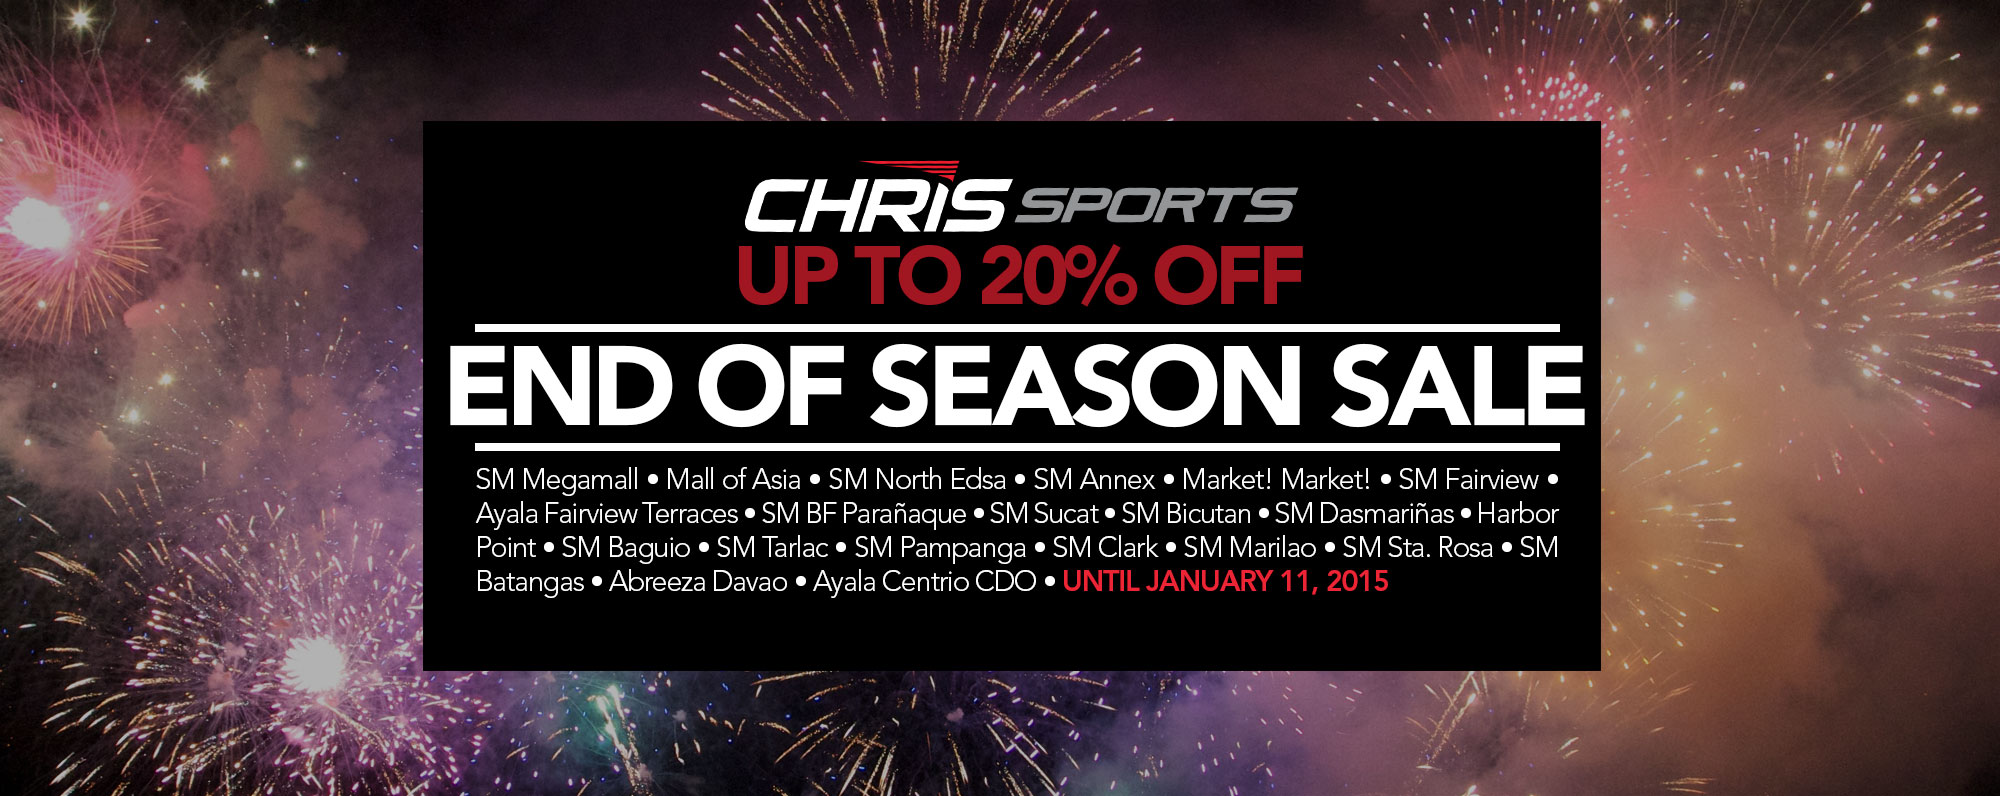 Chris Sports End of Season Sale January 2015